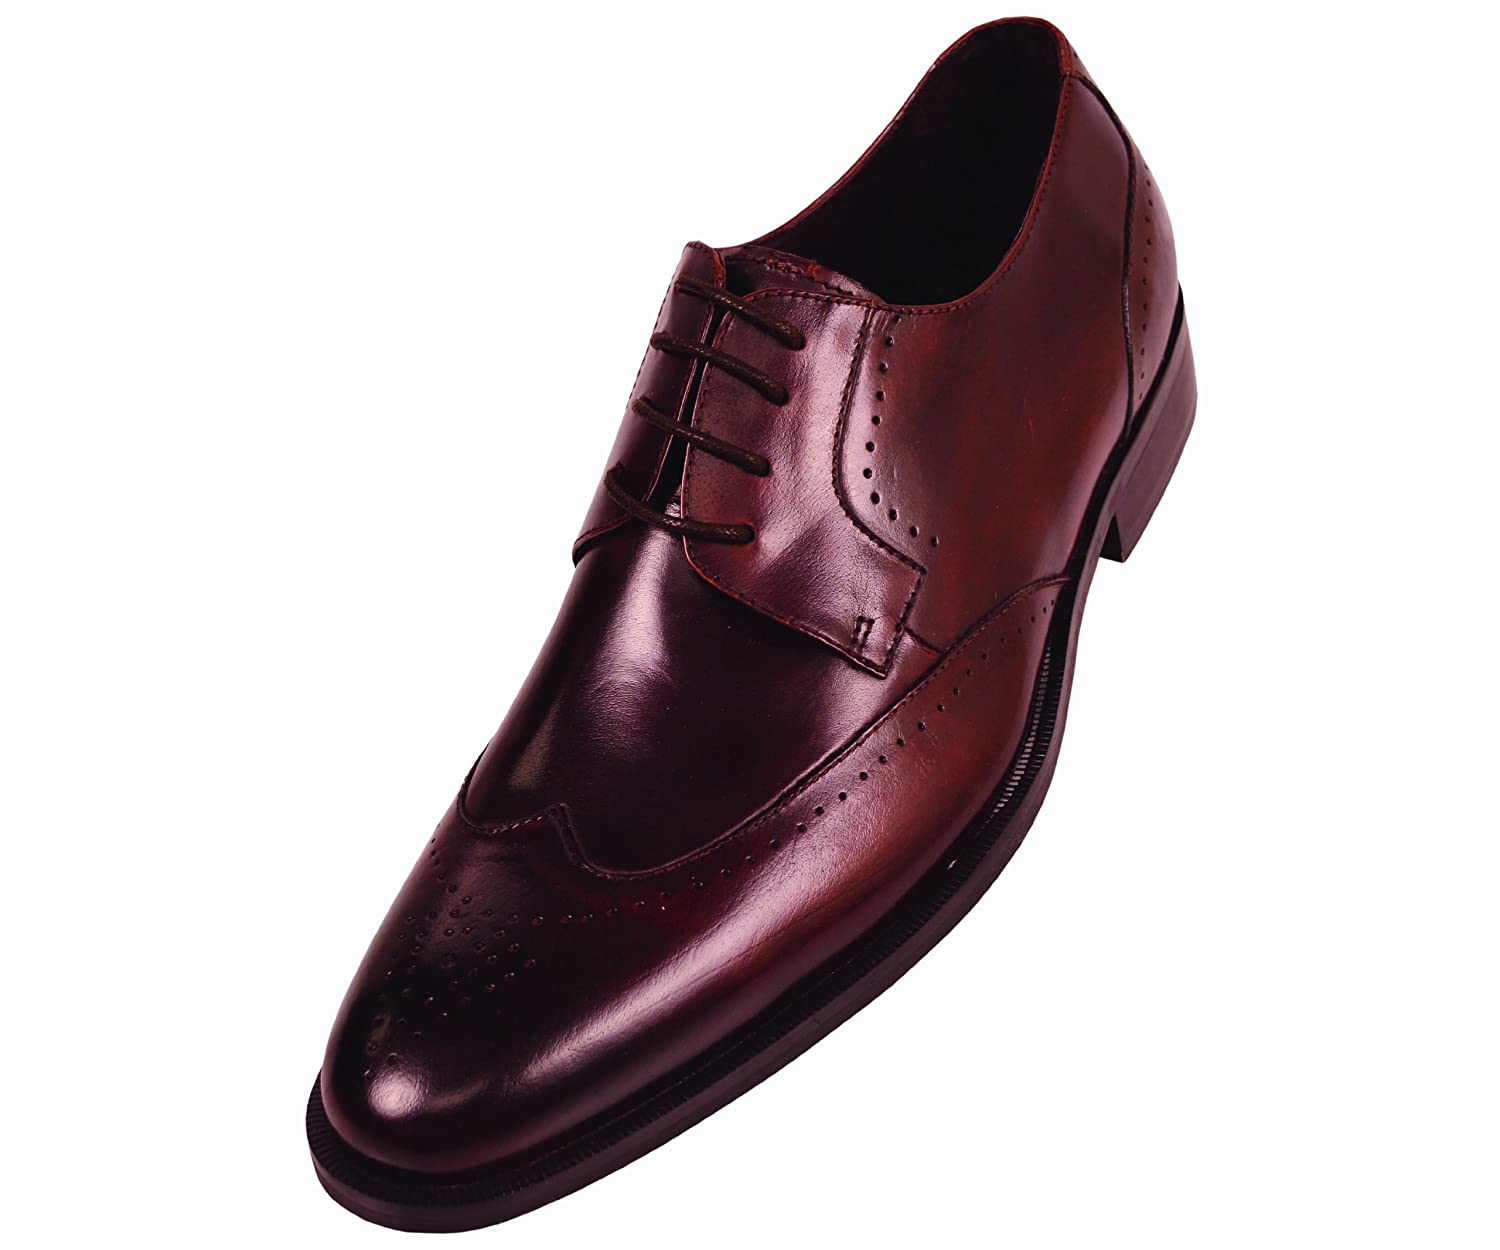 Steven Land Footwear Collection Mens Brown Classic Wingtip Style with Perforation Detailing on Toe Genuine Leather Oxford Dress Shoe: Style SL7184 Brown-065